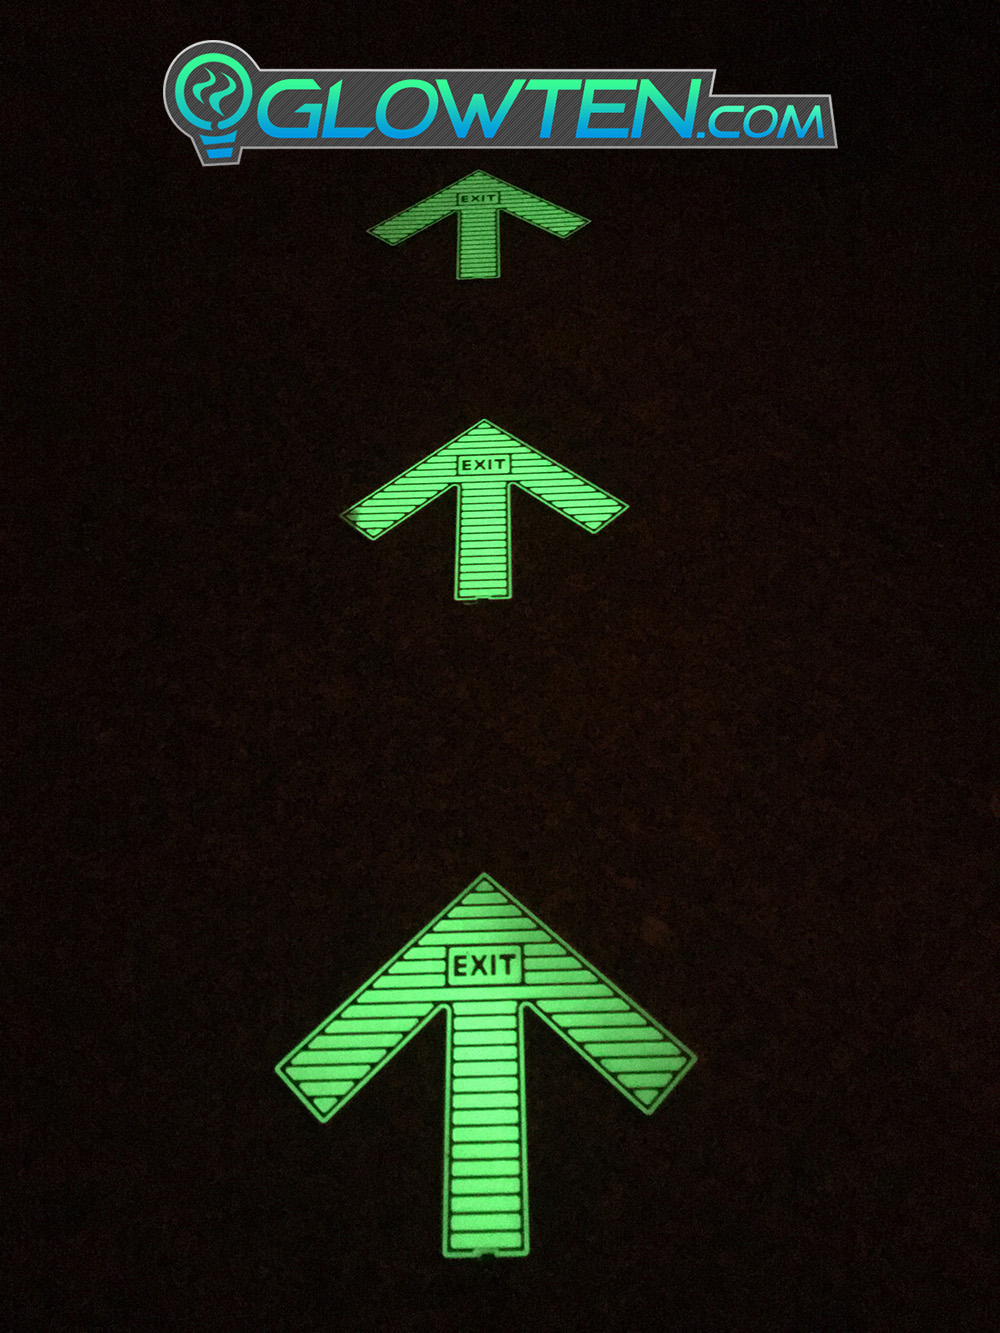 GLOWTEN.com - Directional Pointer Pathway Guide Signs Large Arrow Glow In The Dark Ground Direction With Exit Text Sign Square Block Stainless Steel Metal picture photo cap preview pic image search 3